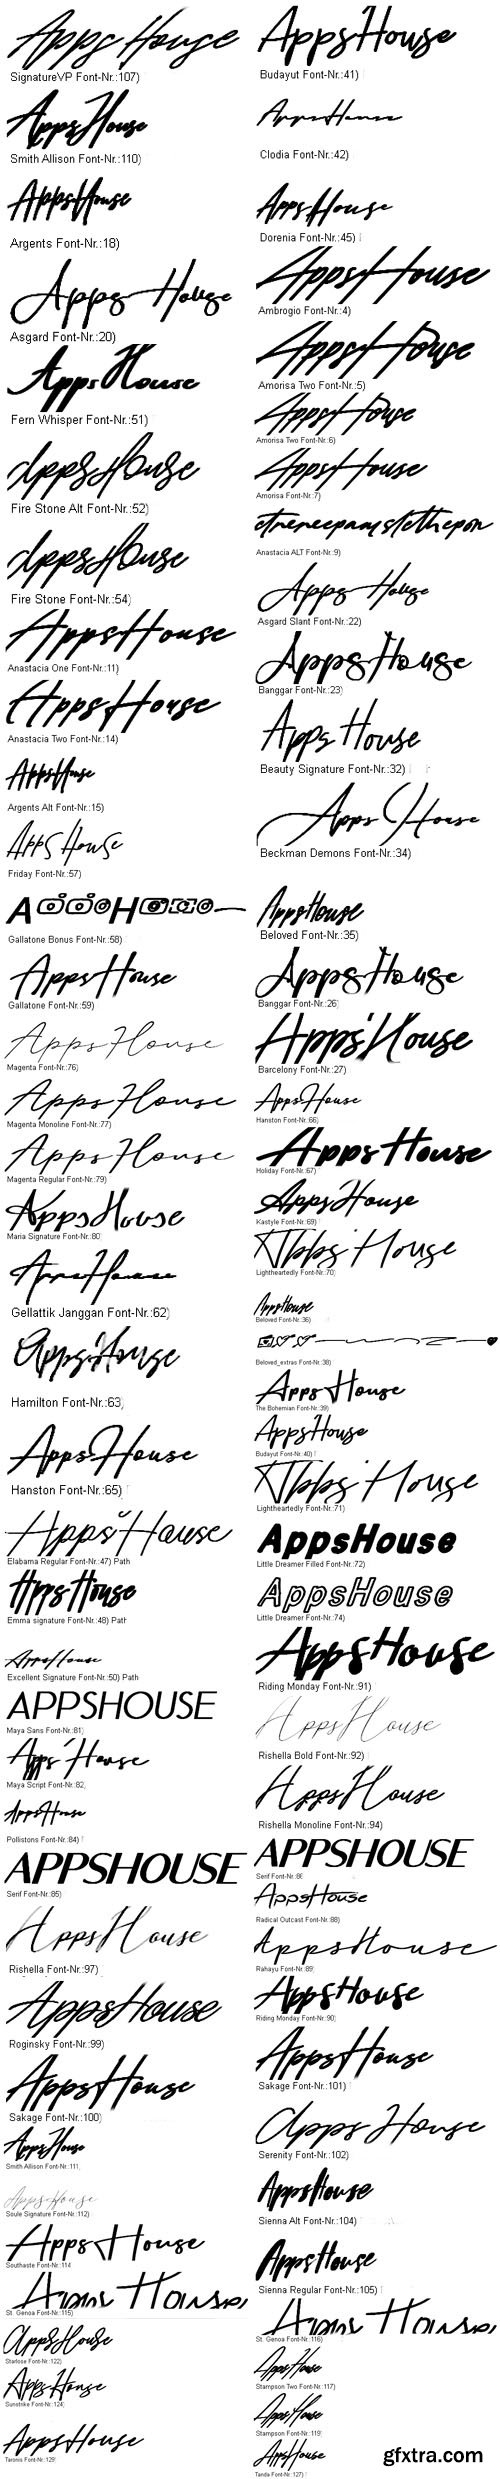 171 Signature Fonts Collection